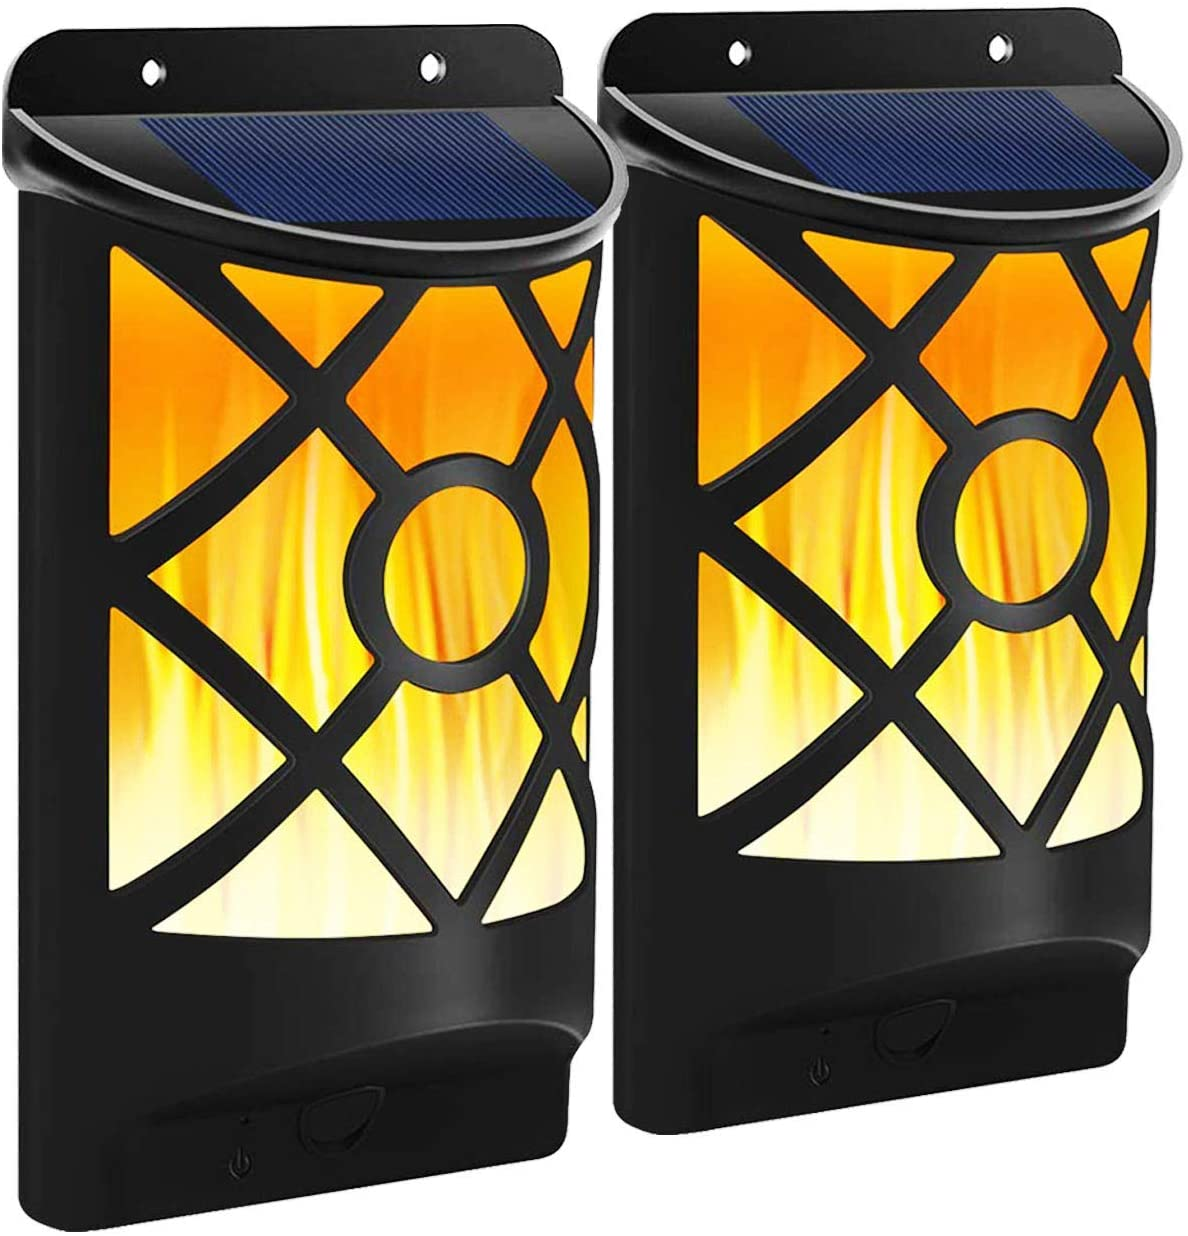 New Max 63% OFF mail order Fitybow Solar Flame Lights Flickering Waterproof Outdoor